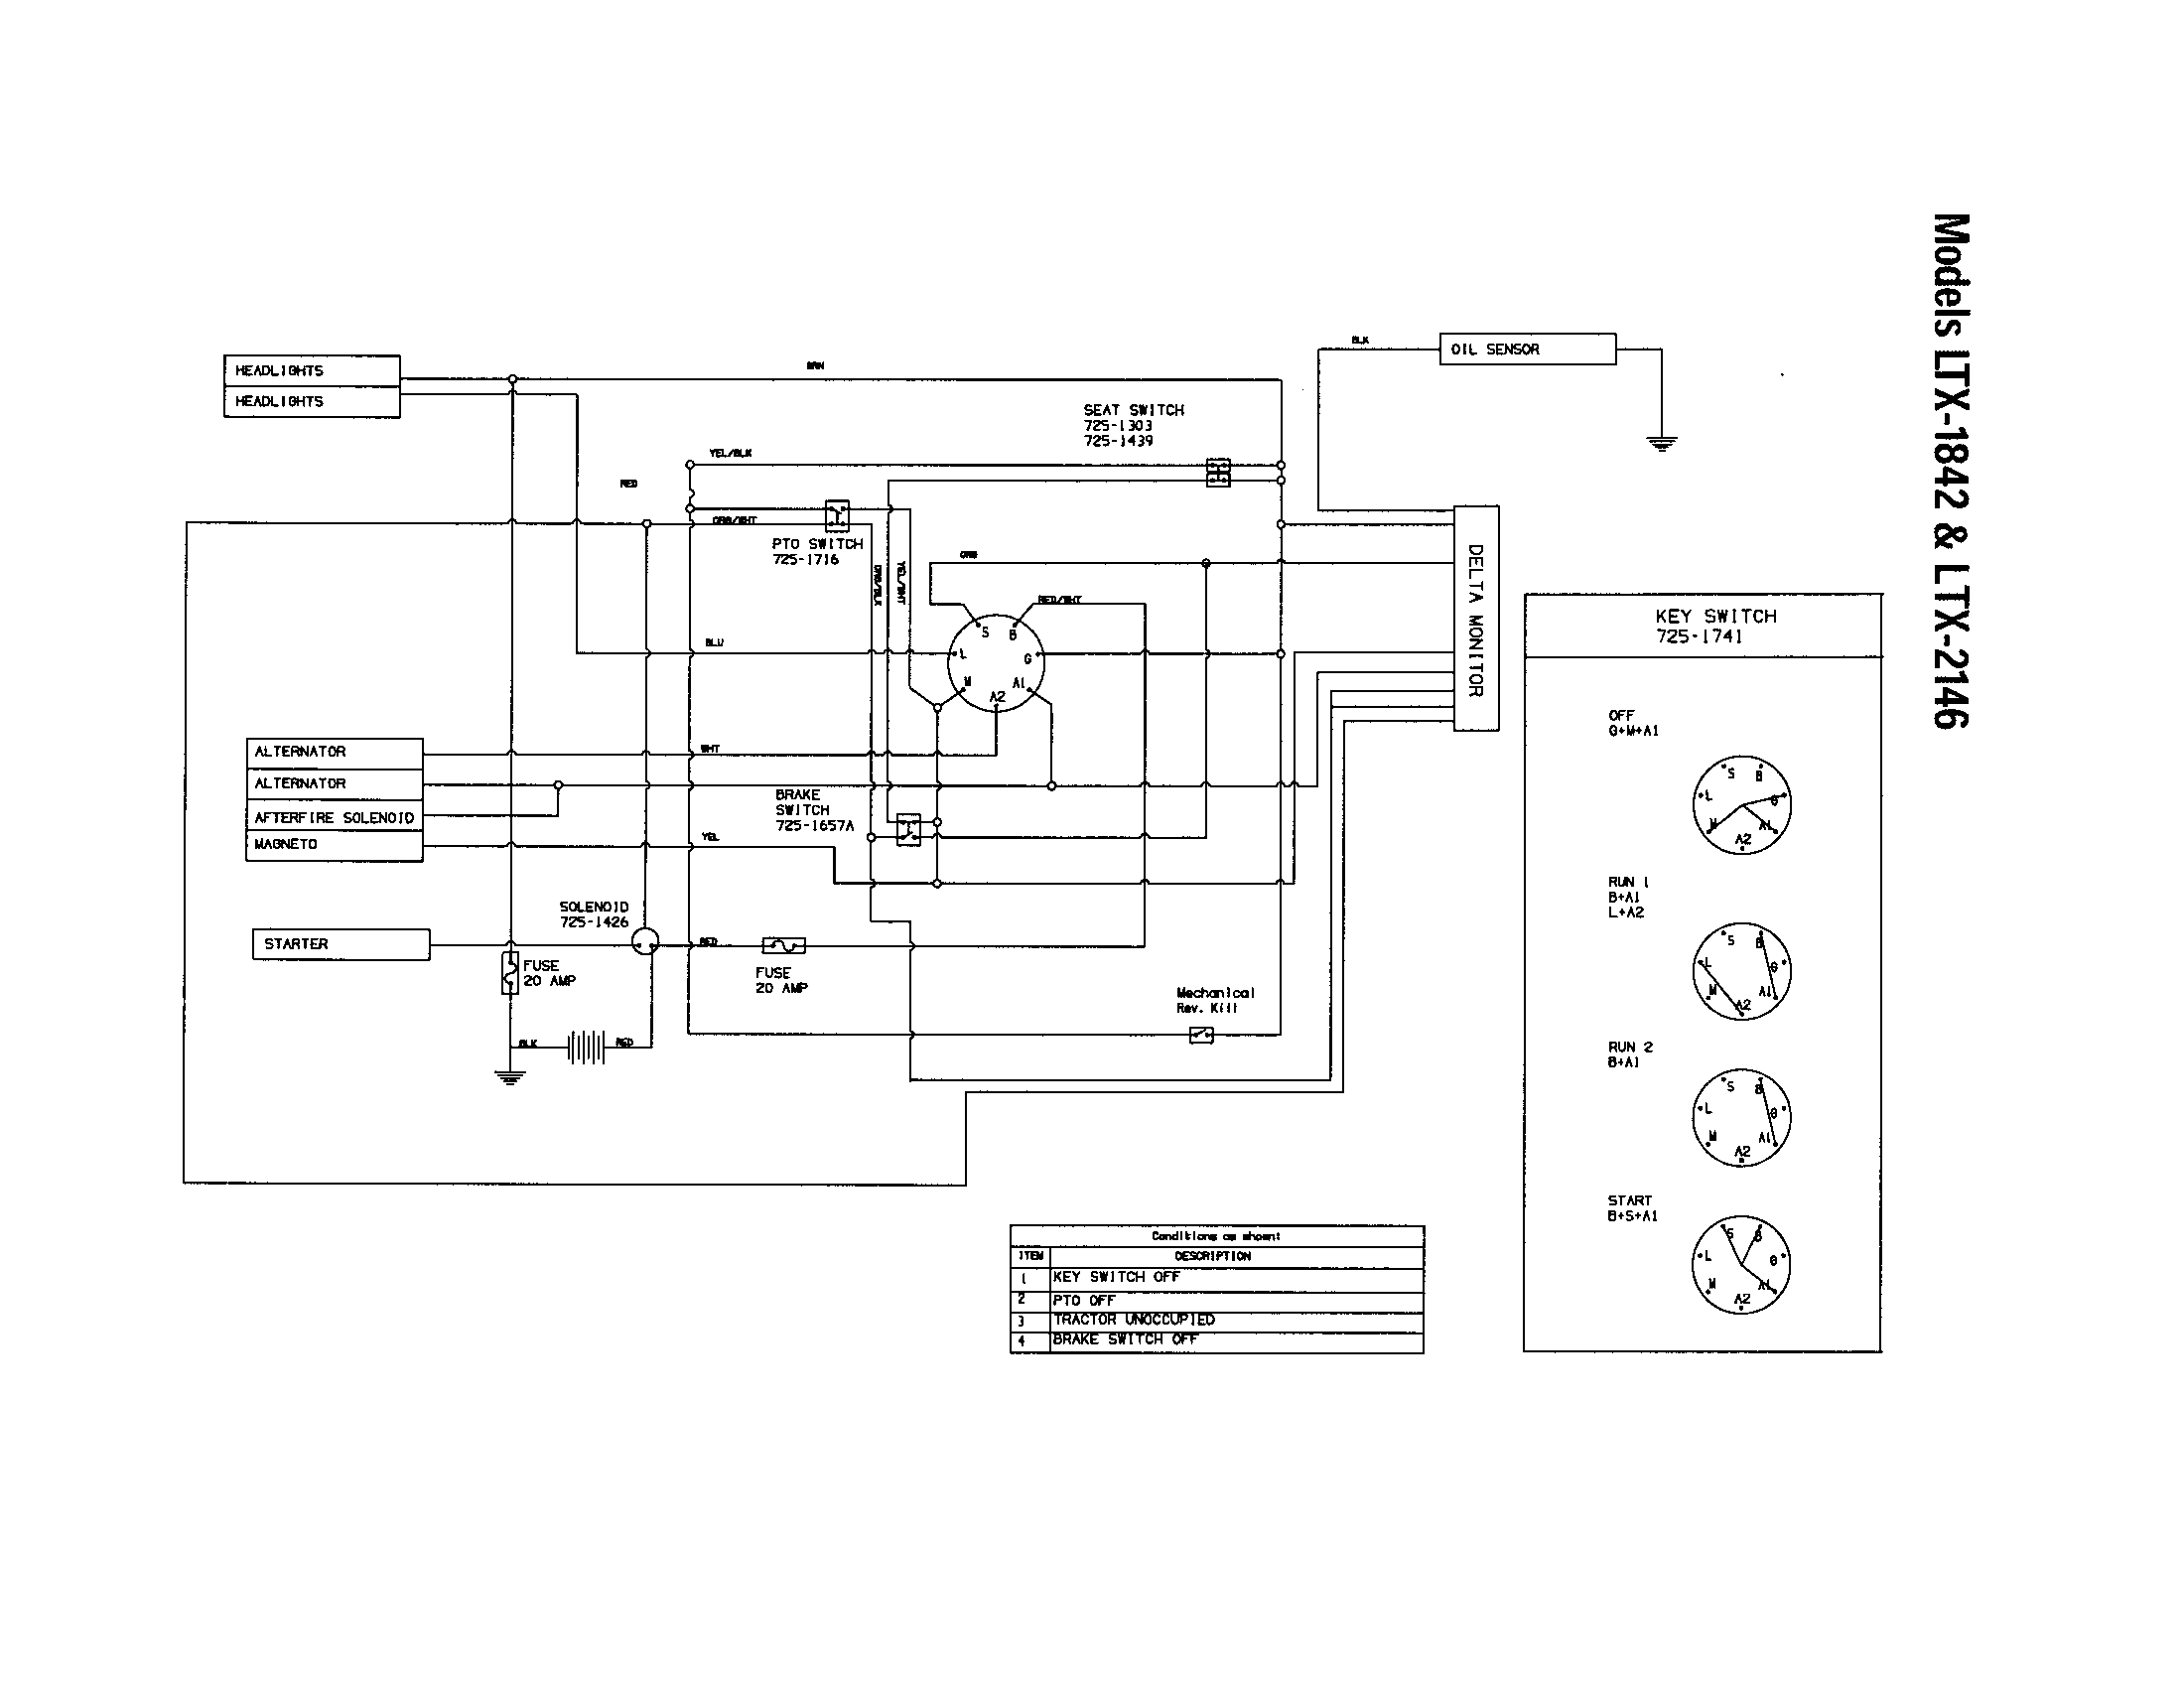 5f6fdf170ac50150de0653e8e97fb173 wiring diagram diagram & parts list for model 13ap609g063 troybilt troy bilt bronco wiring diagram at soozxer.org